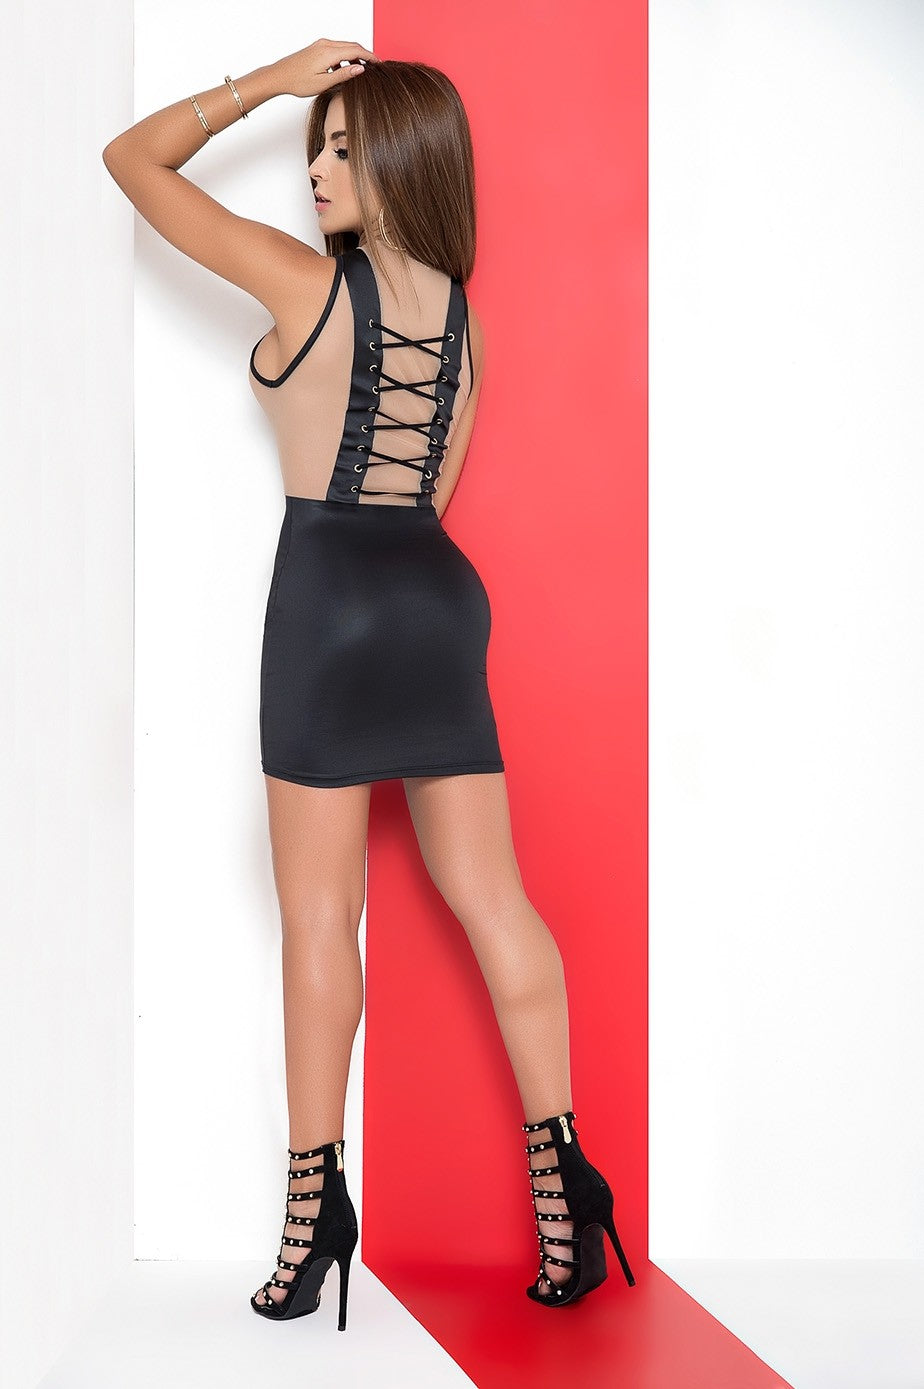 Nude/Black Criss Cross Mini Dress - PlaythingsMiami